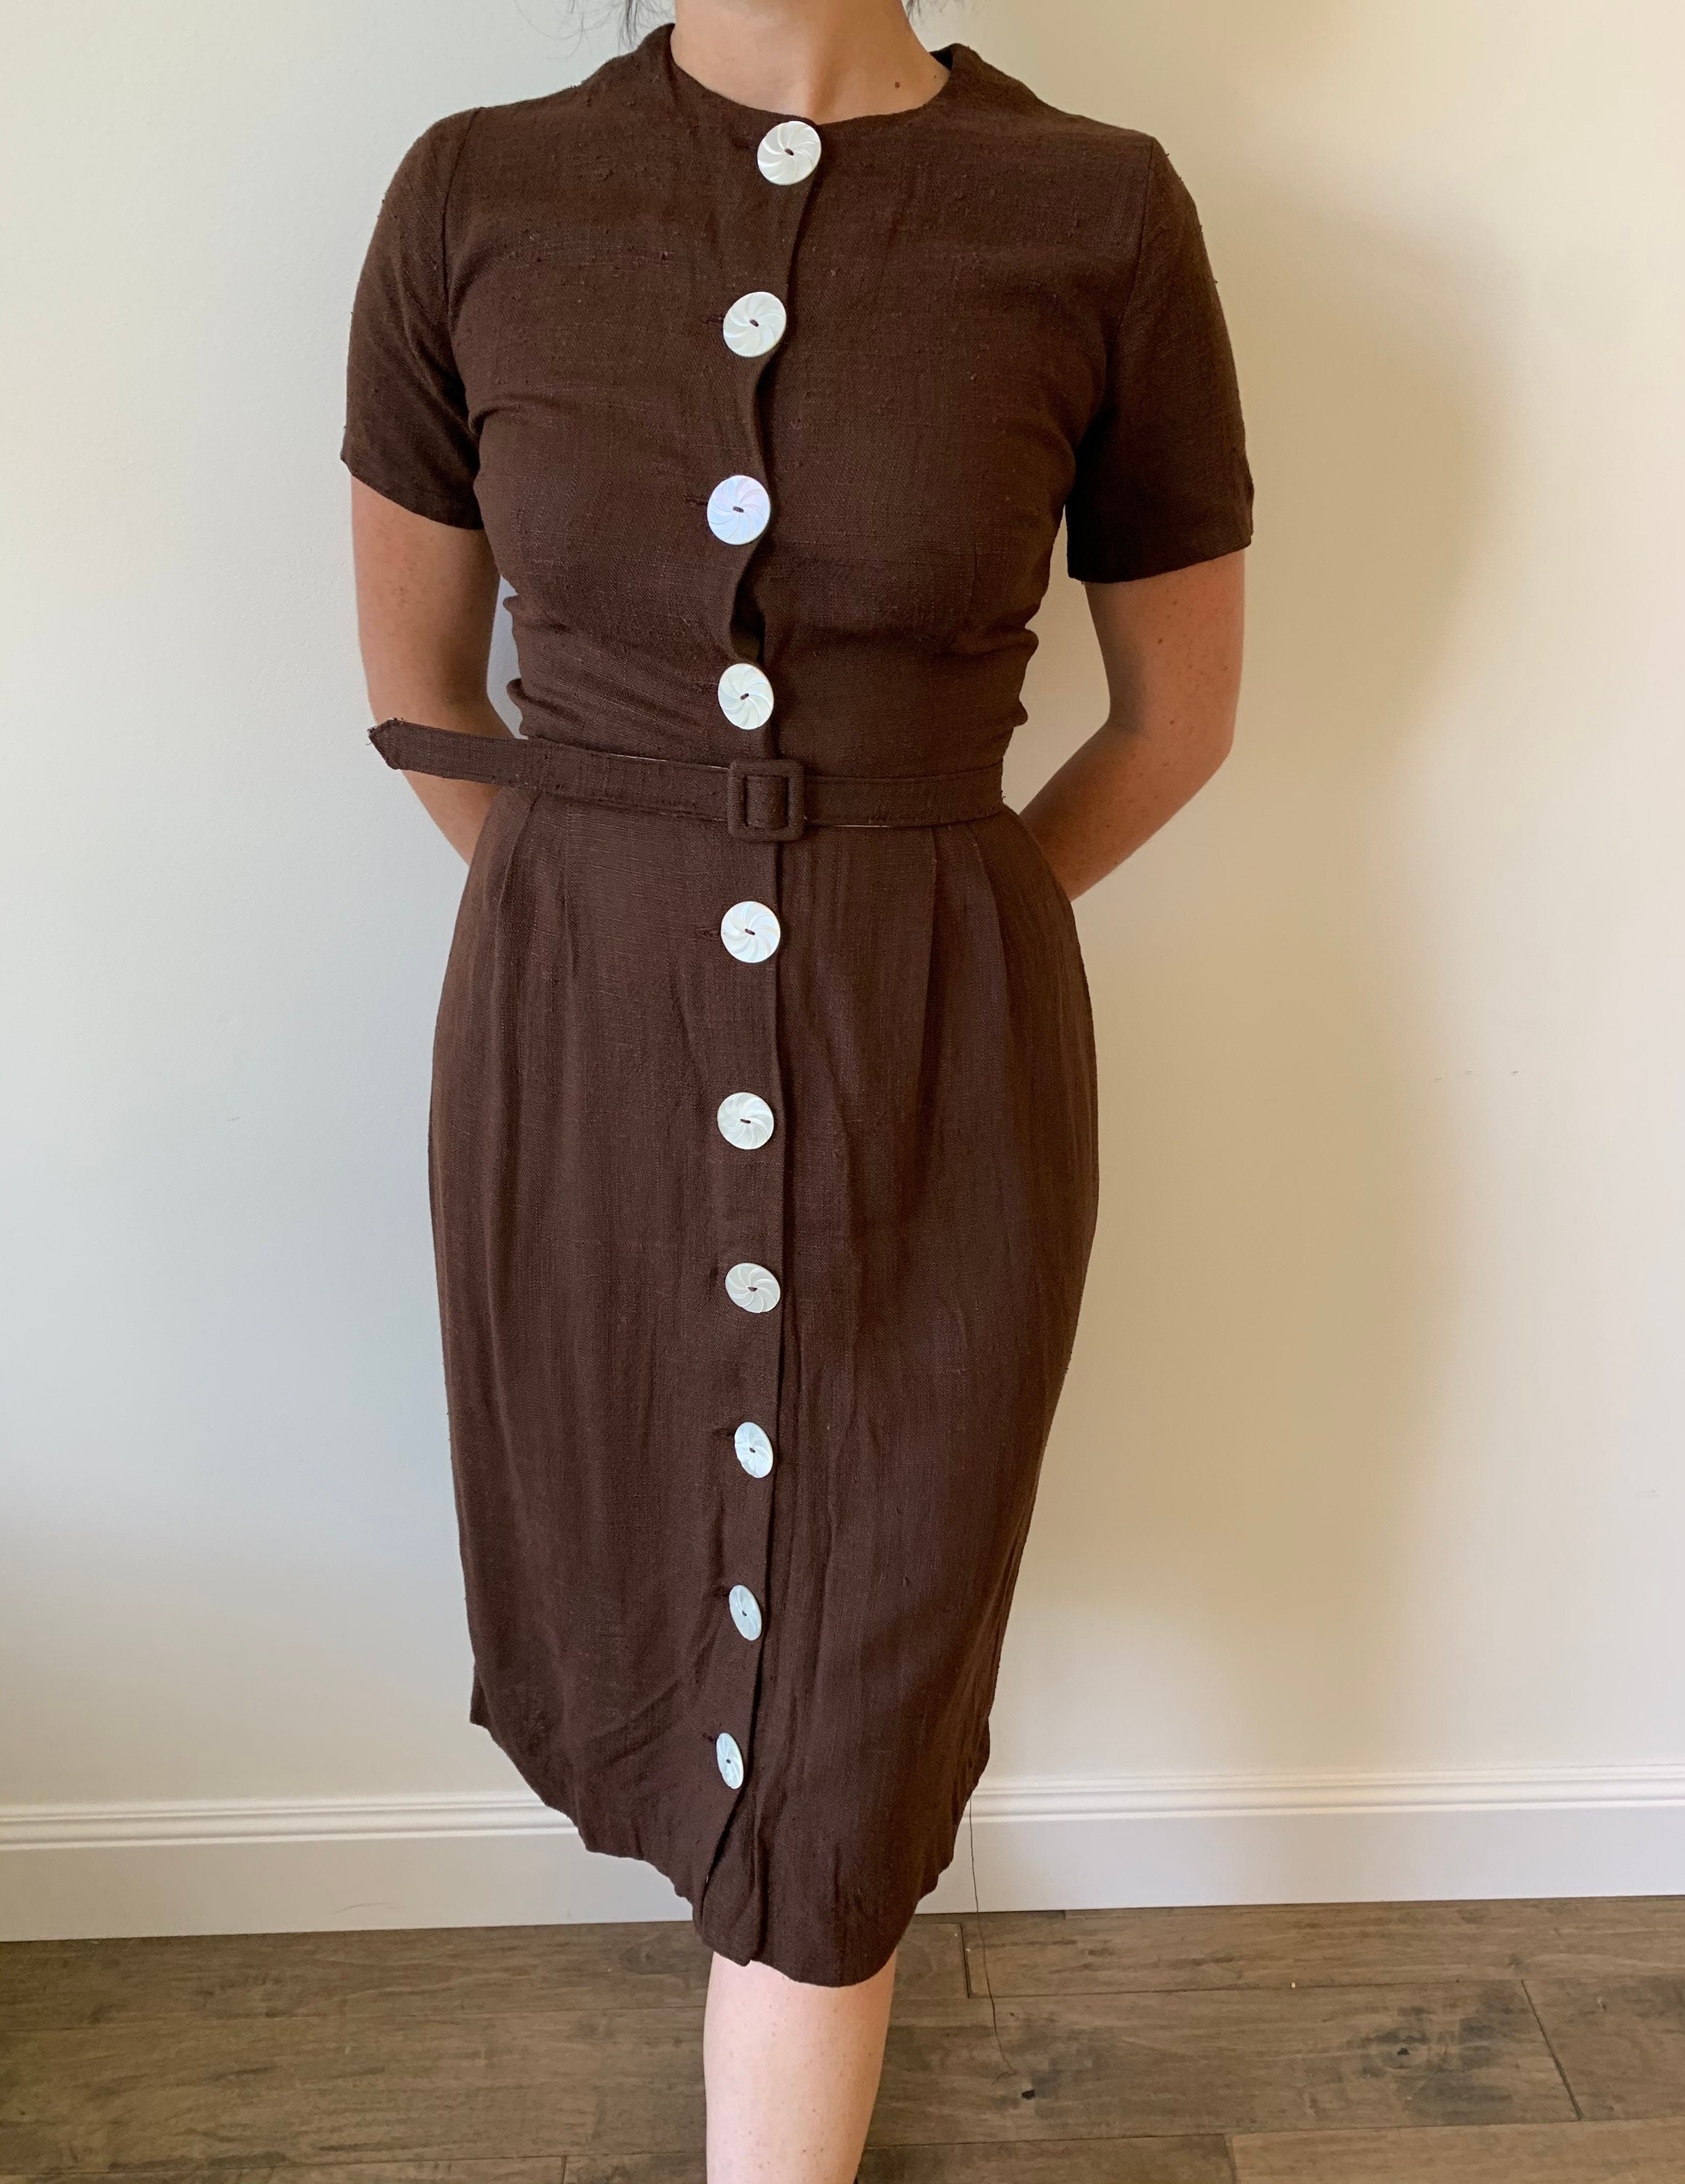 1950s Hats: Pillbox, Fascinator, Wedding, Sun Hats 1950S Chocolate Brown Linen Wiggle Shirtdress With Mother Of Pearl Carved Buttons  Jacket Size Small Medium $0.00 AT vintagedancer.com